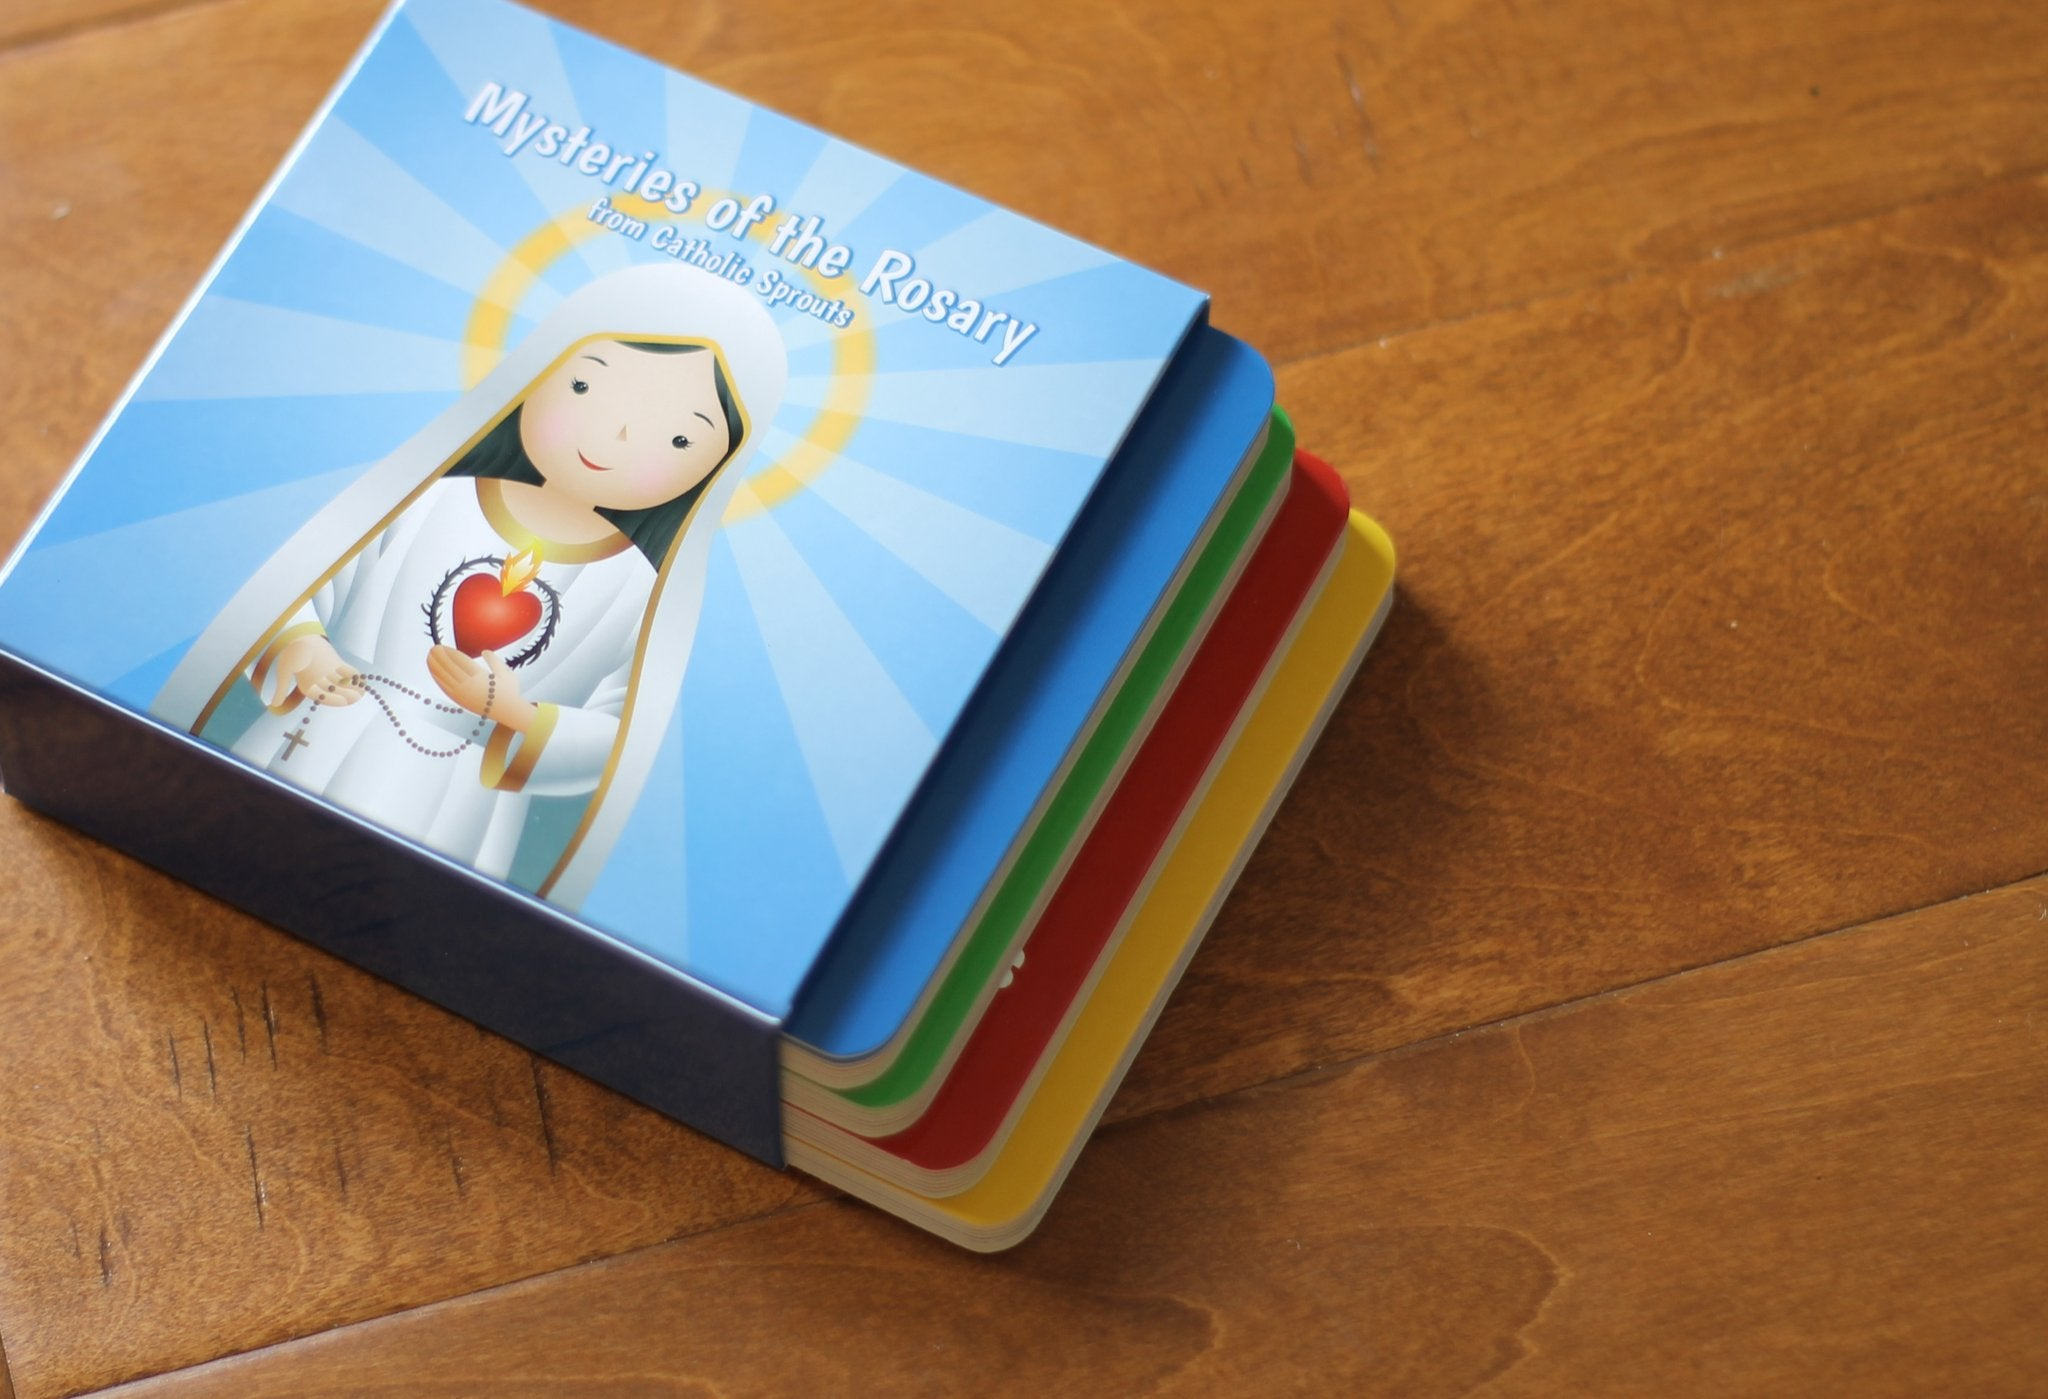 Mysteries of the Rosary Board Book Set - ABCatholic